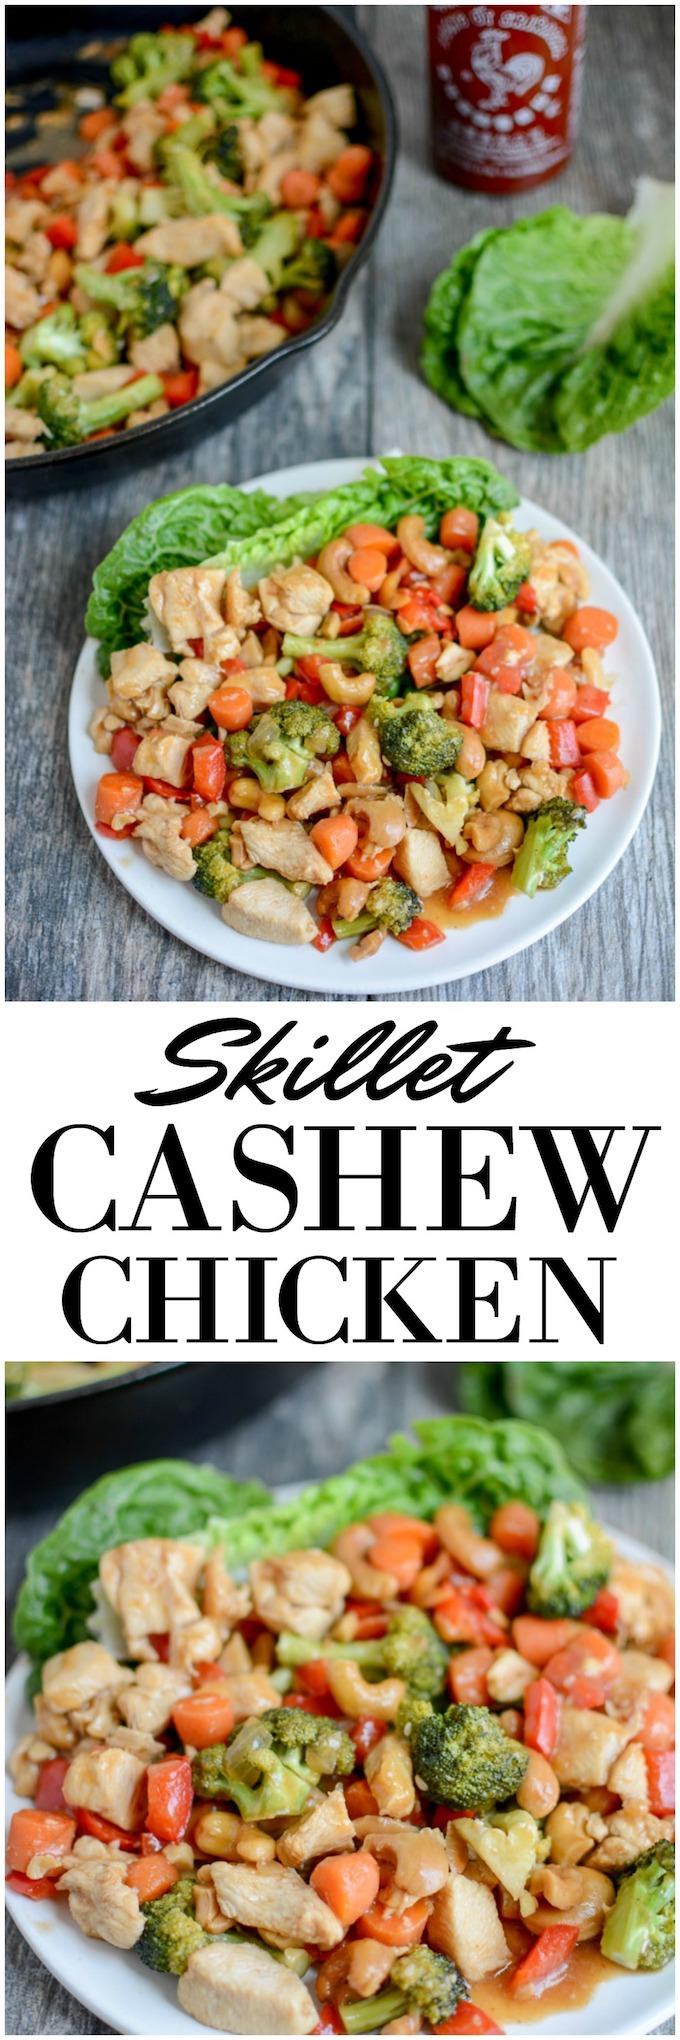 This Skillet Cashew Chicken is the perfect one-pan dinner. It comes together quickly and is full of flavor. Make it spicy or mild and serve it in lettuce wraps or over rice!